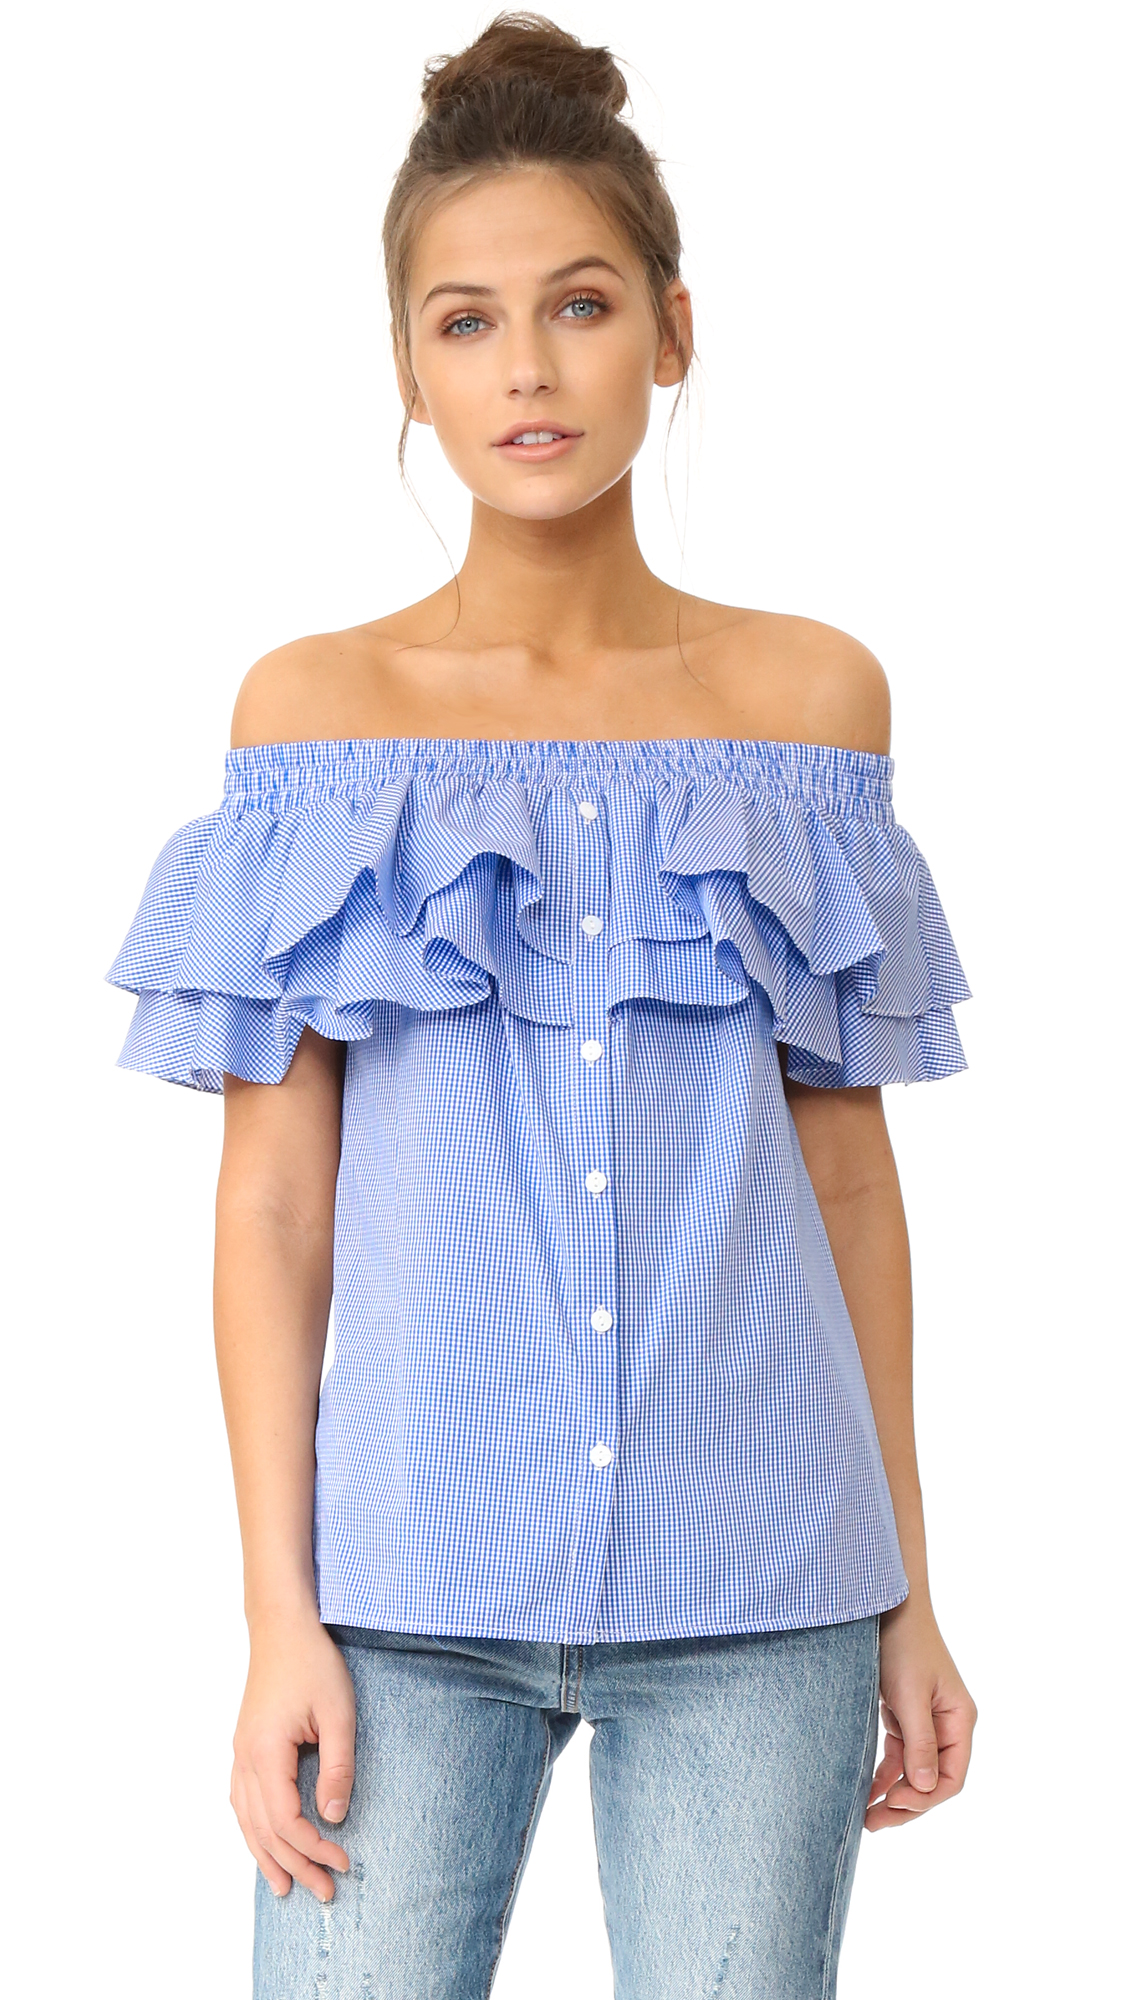 Tiered ruffles trim the off shoulder neckline on this gingham Petersyn blouse. Button front closure. Short sleeves. Fabric: Crisp weave. 100% cotton. Dry clean. Made in the USA. Measurements Length: 19.75in / 50cm, from center back Measurements from